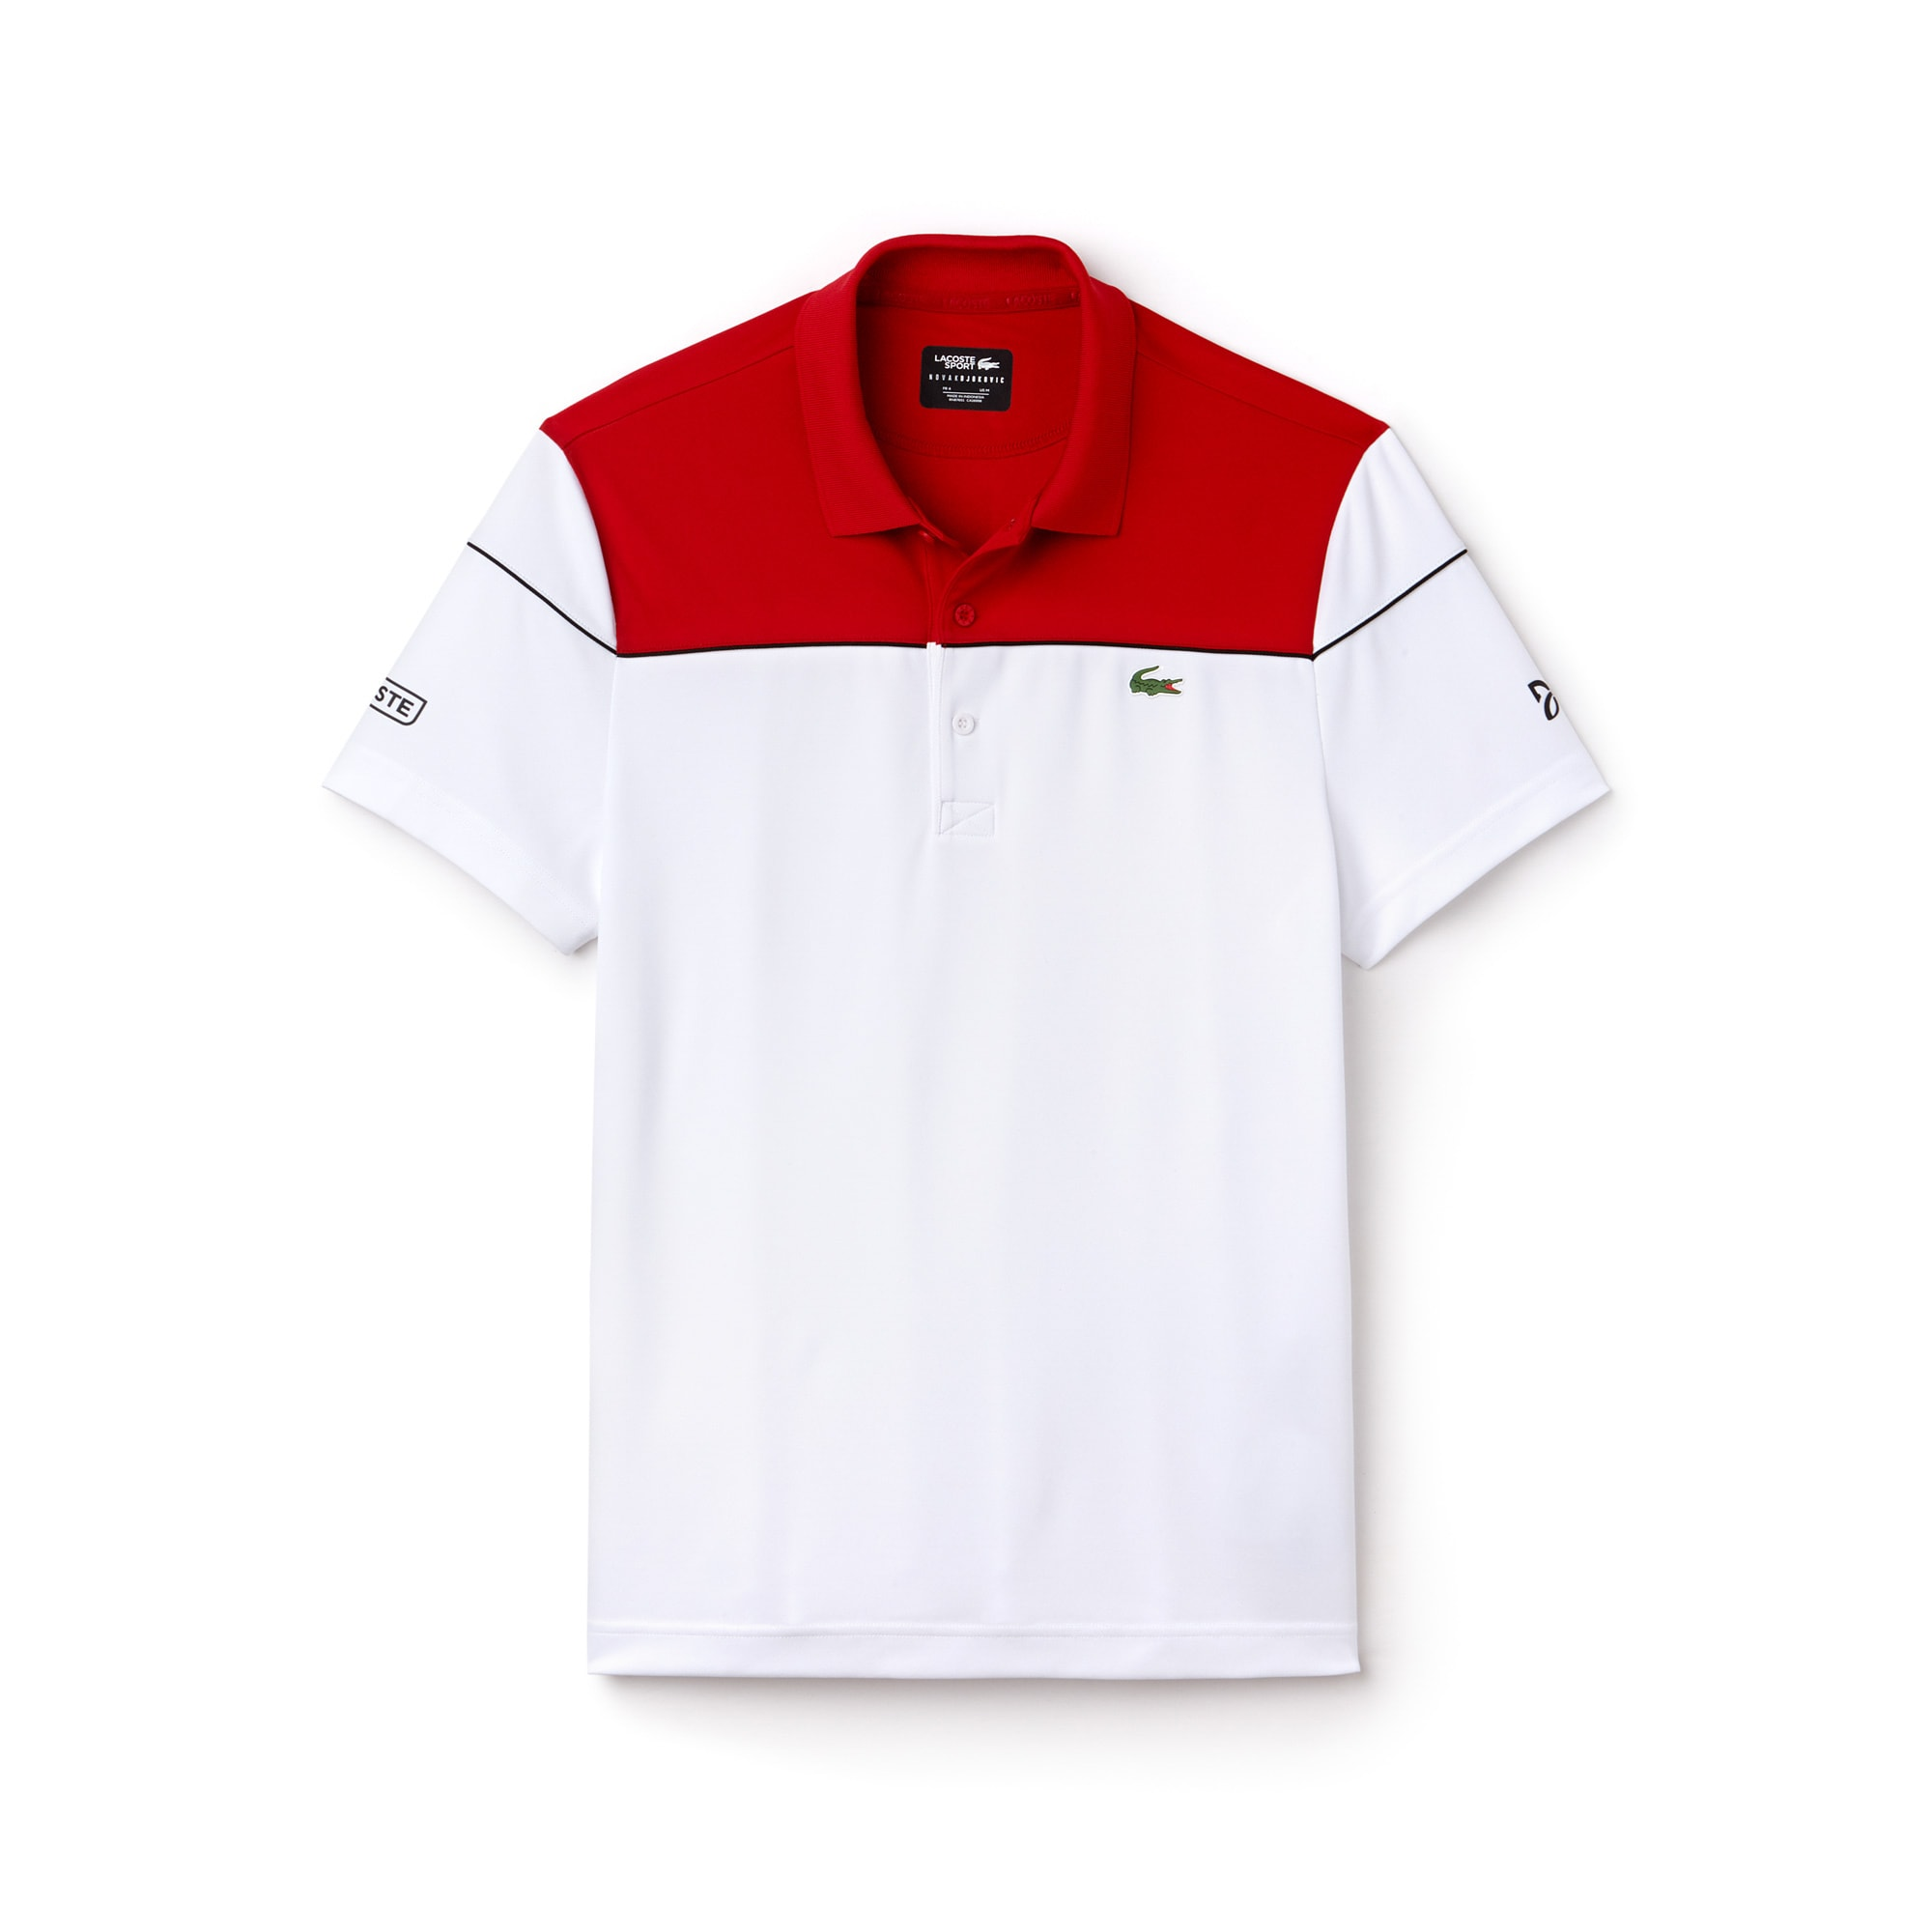 Polo LACOSTE SPORT COLLEZIONE NOVAK DJOKOVIC in piqué tecnico color block